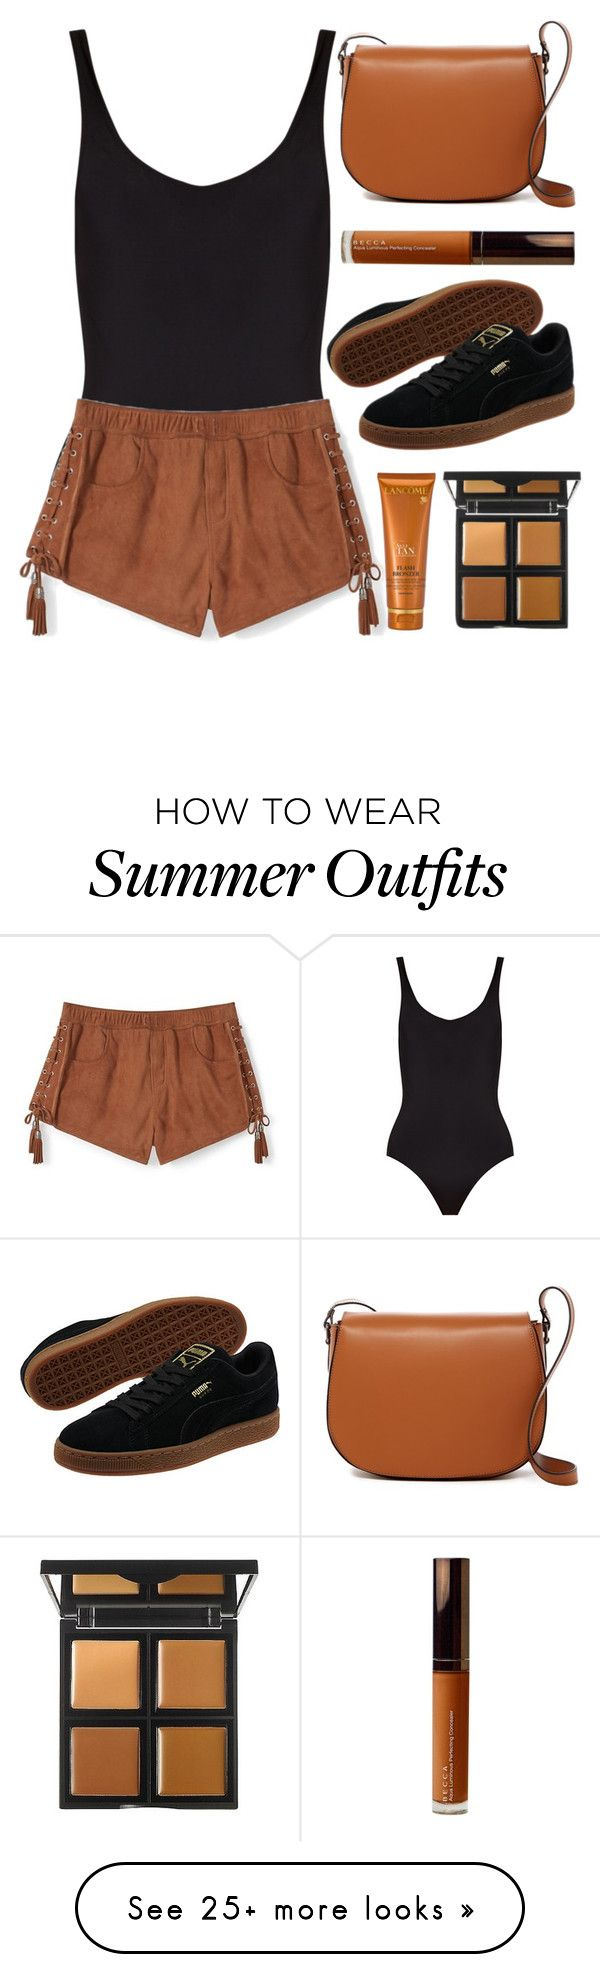 """""""summer"""" by sipoczanna on Polyvore featuring Solid & Striped, Rebecca Minkoff, Puma, Persaman New York, Lancôme, Becca and e.l.f."""